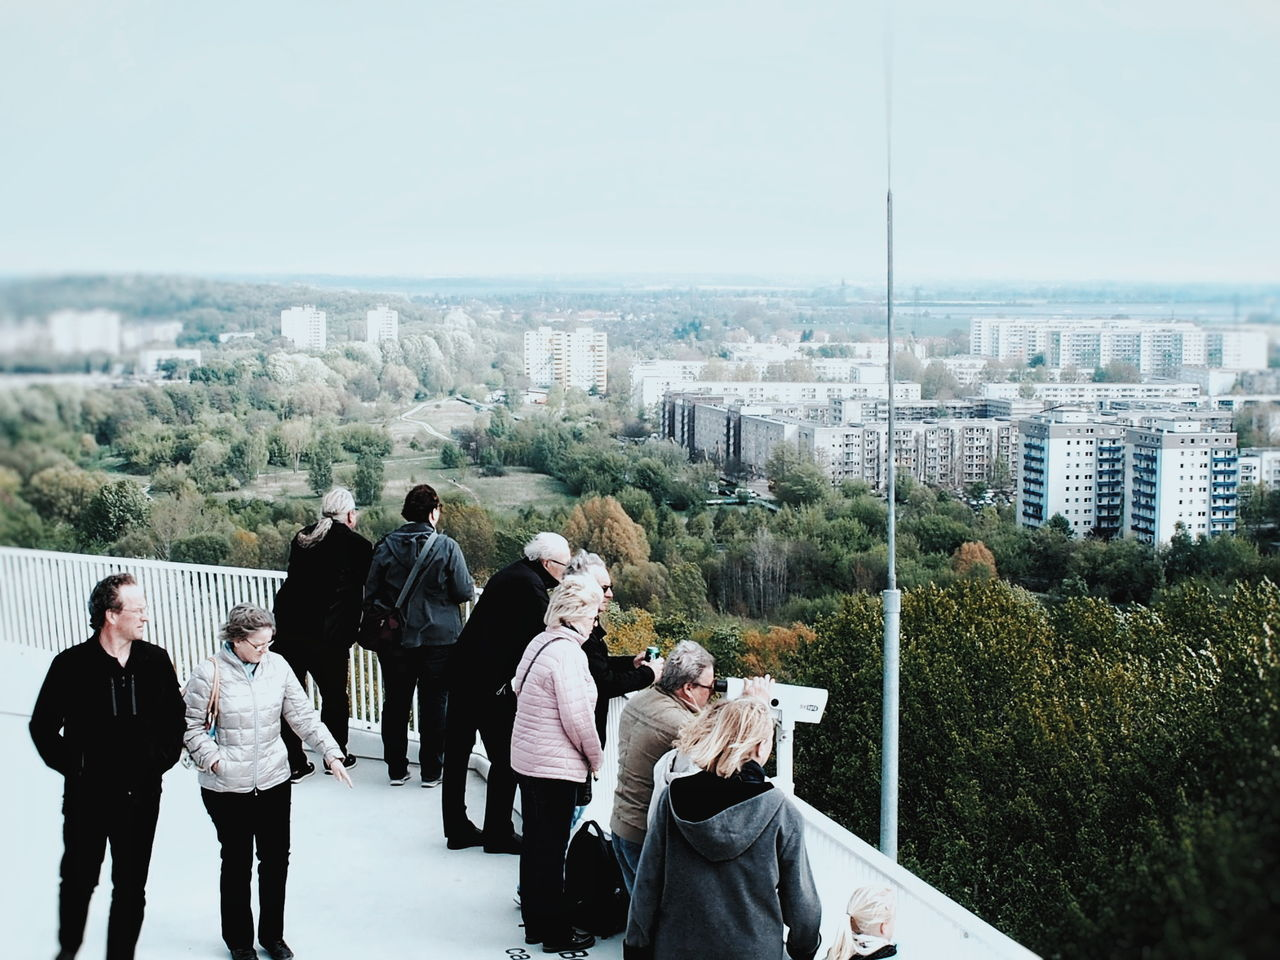 Watching the Skyline of Marzahn ... Day Adult Outdoors People Cityscape Sky Streetphoto_color Streetphoto Streetphotography Architecture Plattenbau Plattenbauromantik White The Great Outdoors - 2017 EyeEm Awards The Street Photographer - 2017 EyeEm Awards The Architect - 2017 EyeEm Awards